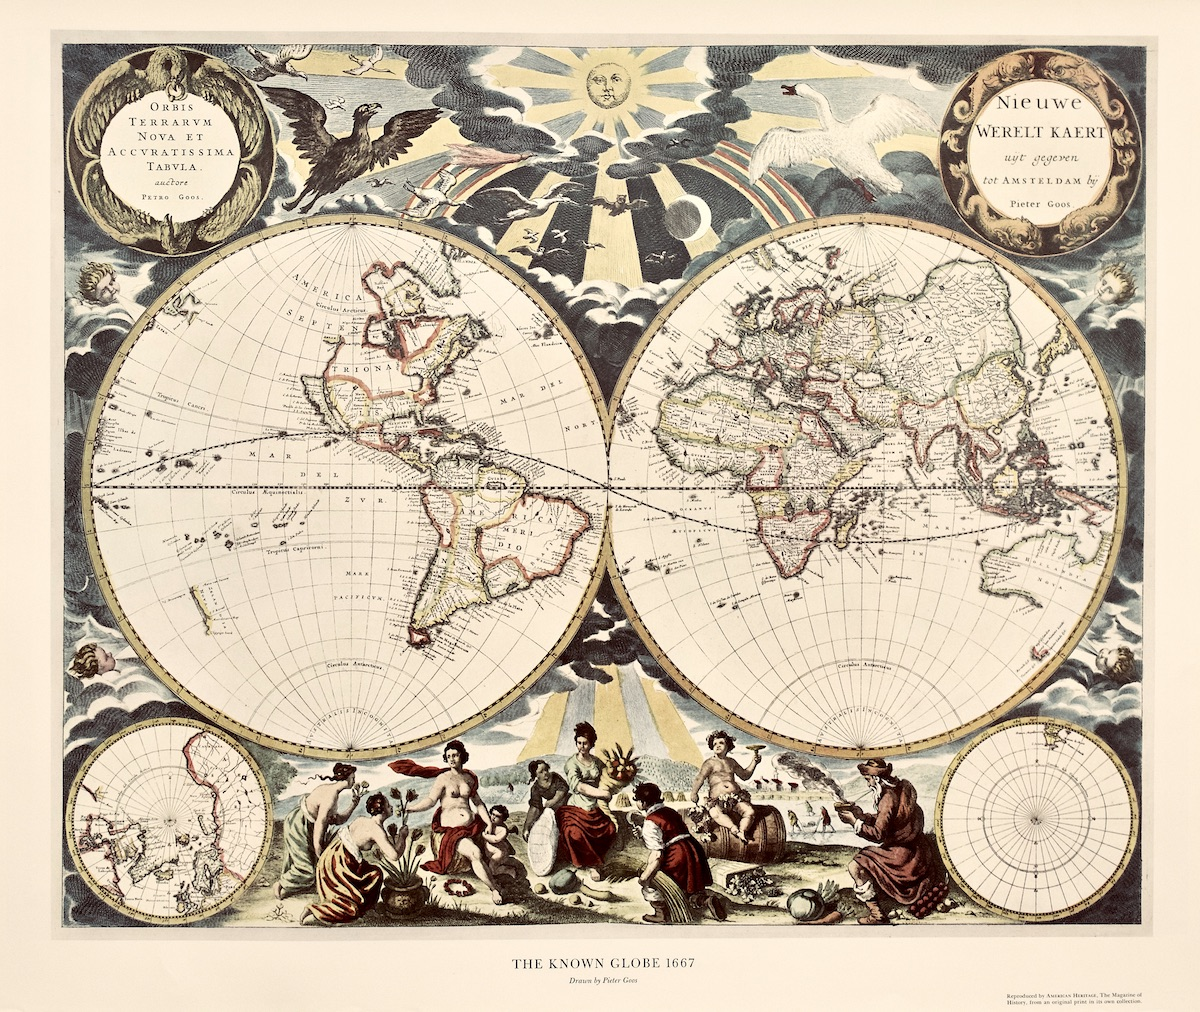 The Known Globe 1667